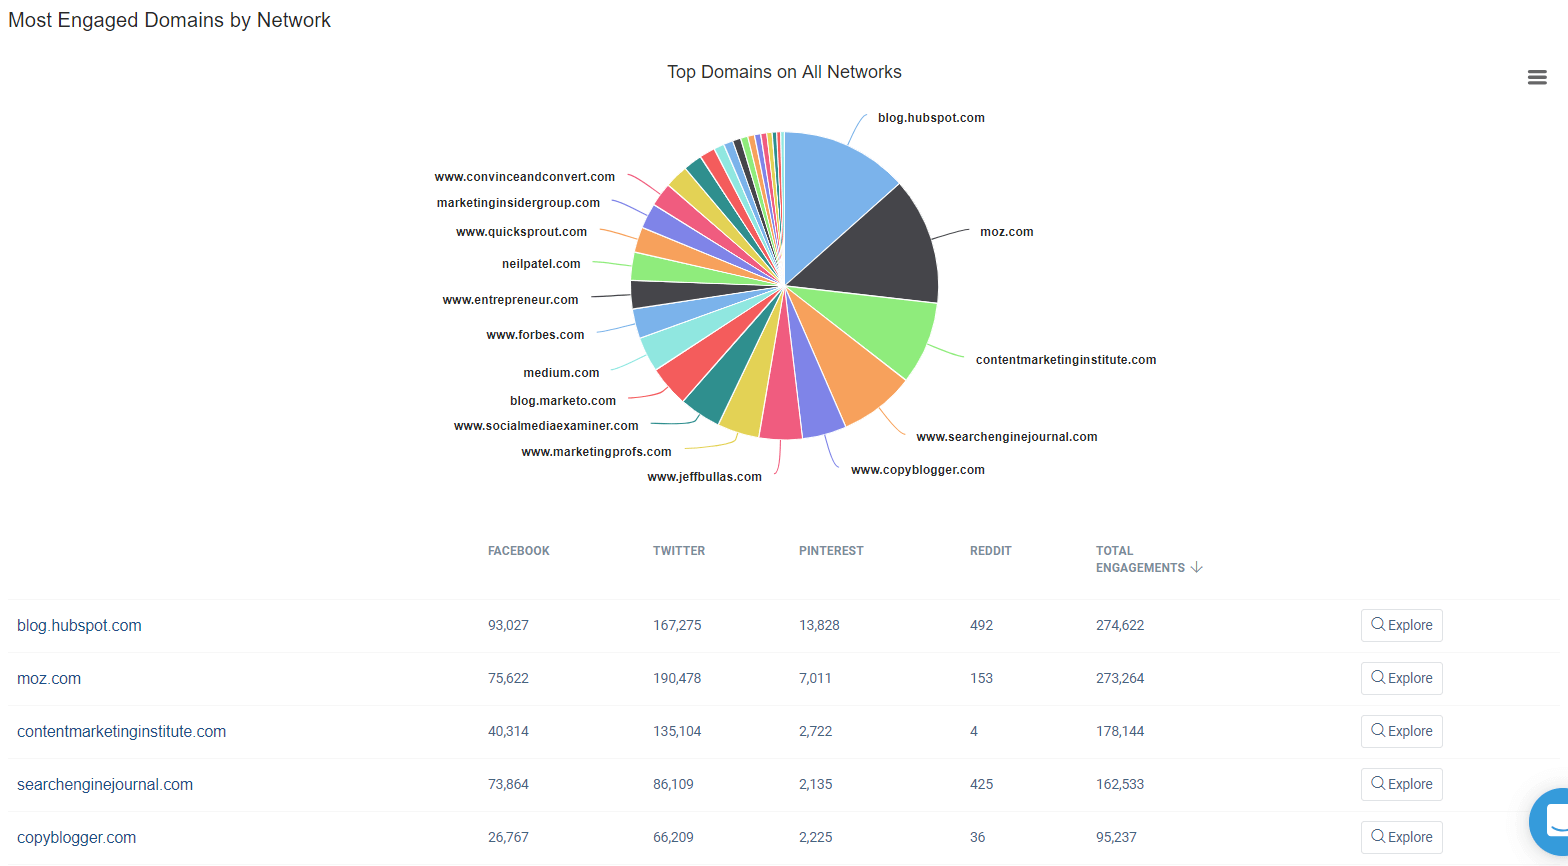 buzzsumo_most-engaged-domains